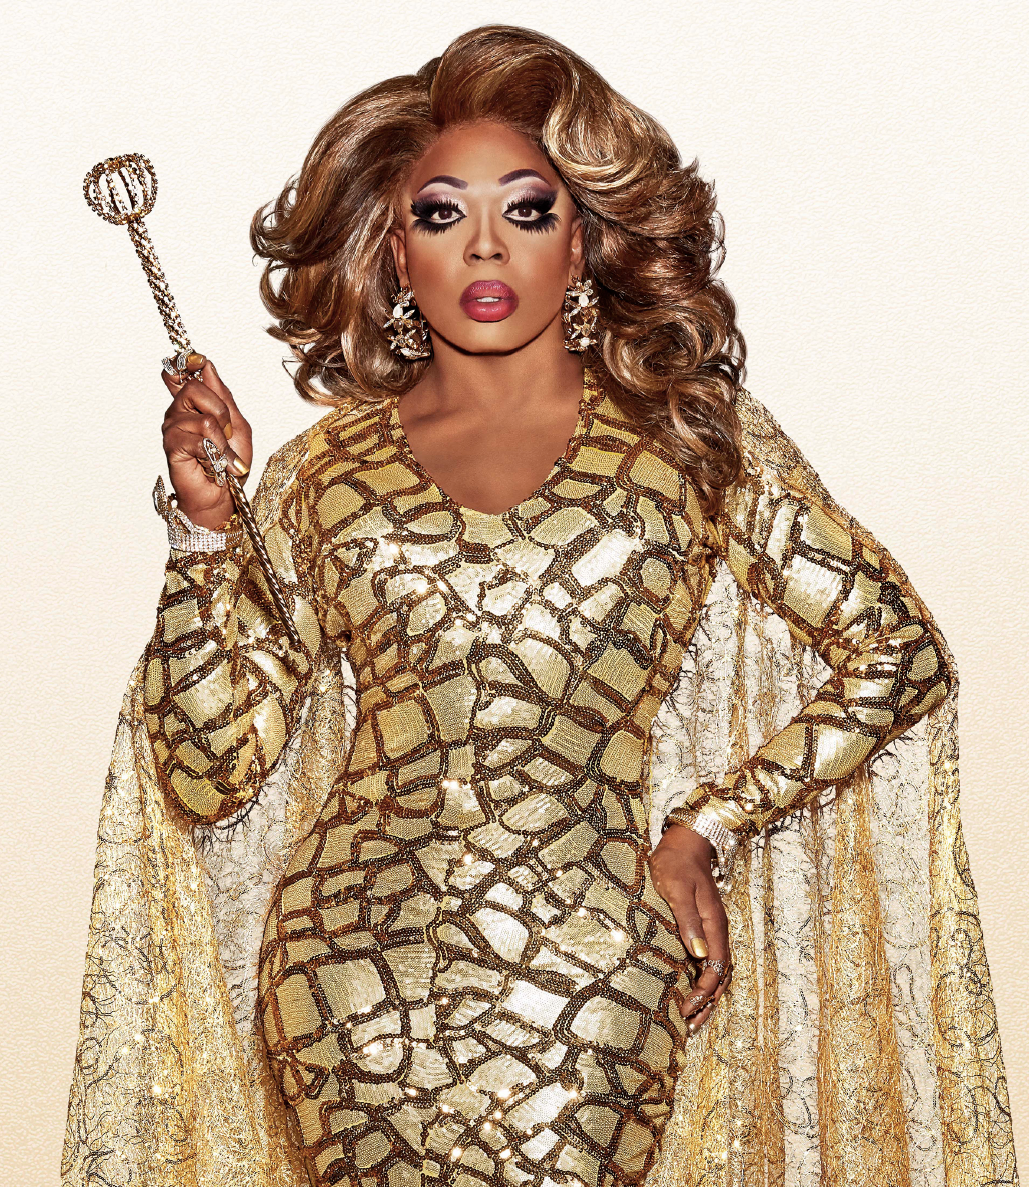 Image of All-Stars 3 8x10 - Unsigned